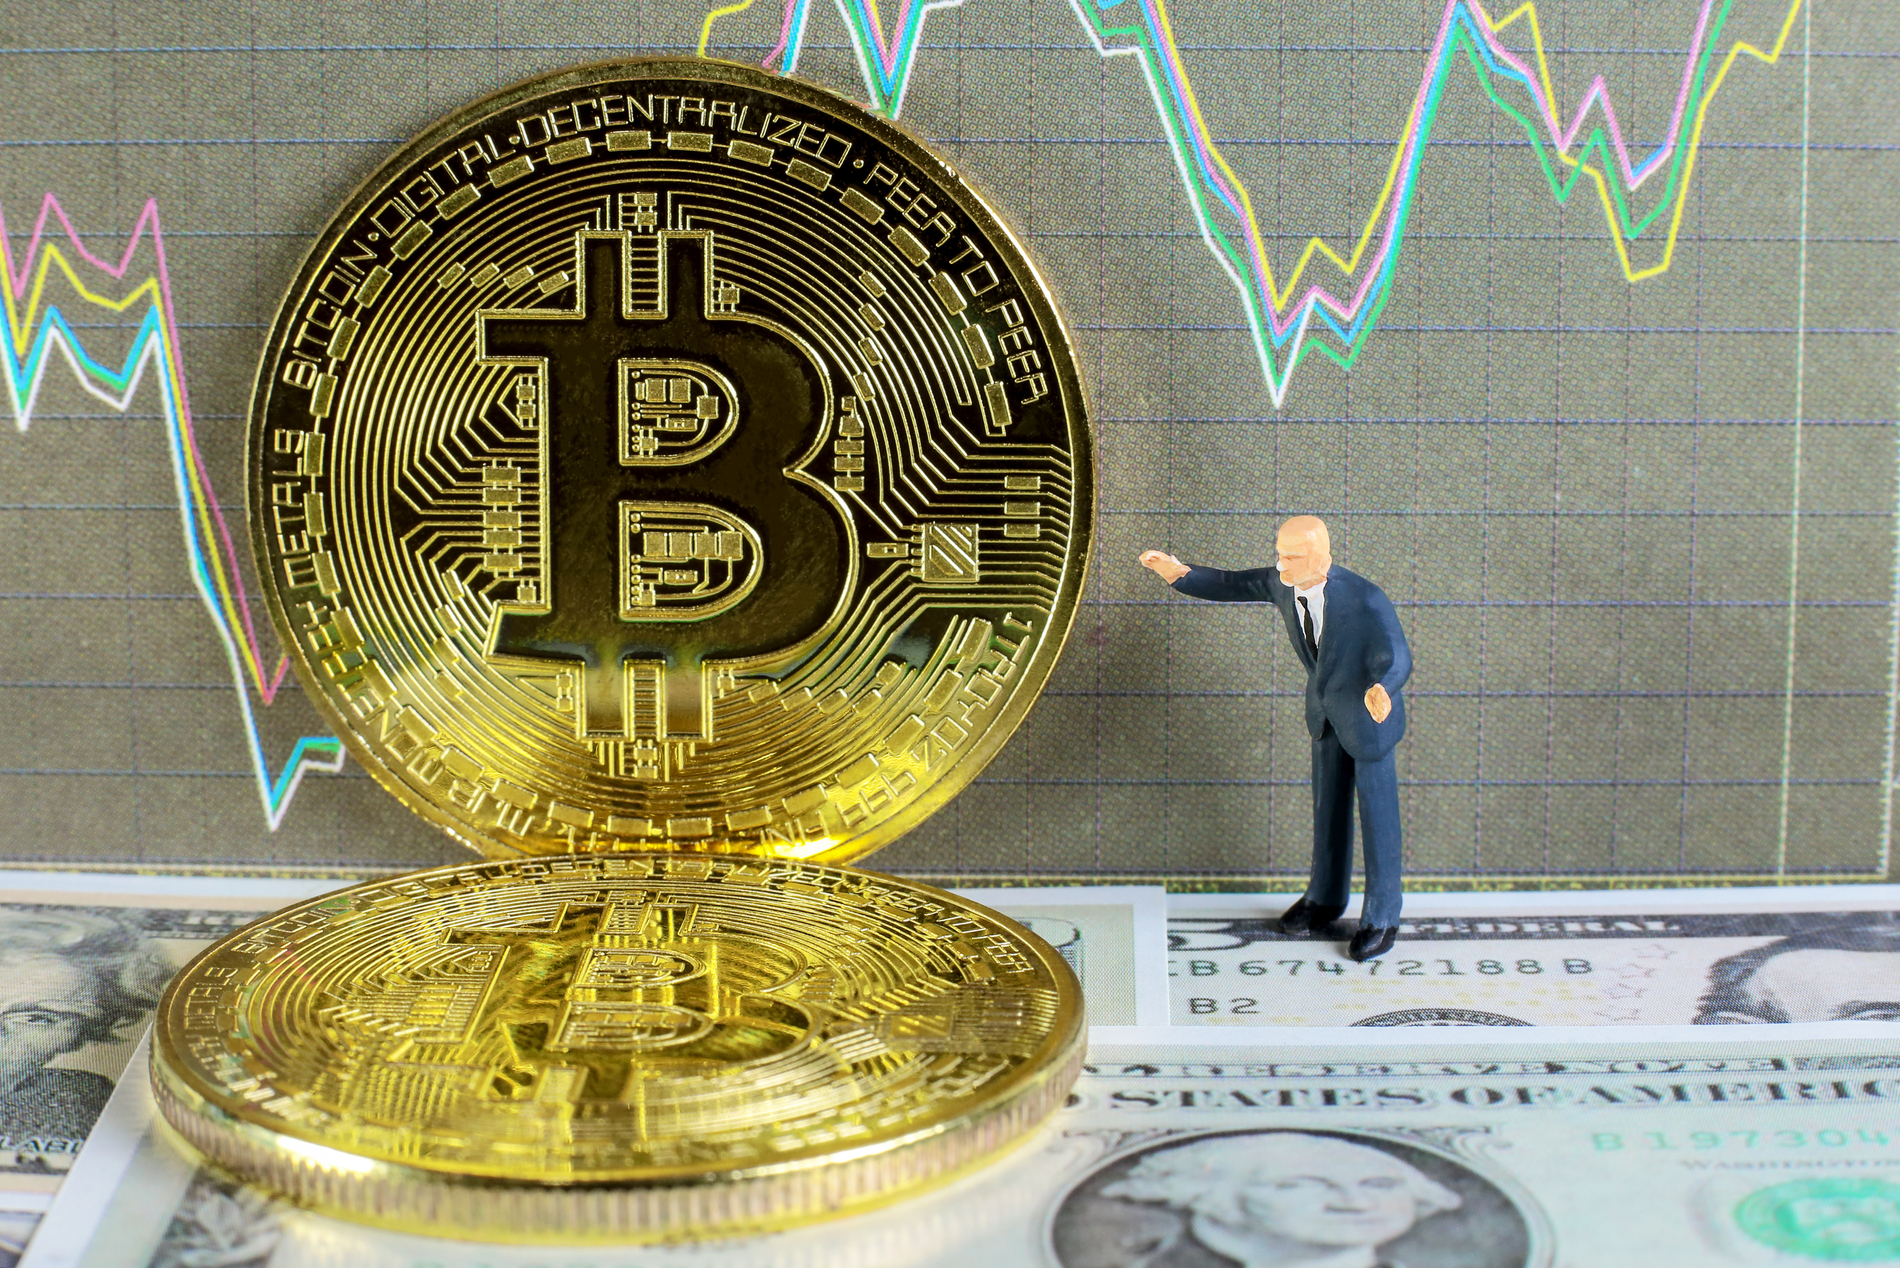 Bitcoin Price Charts Echo Pattern Seen Before 2015 Bull Market